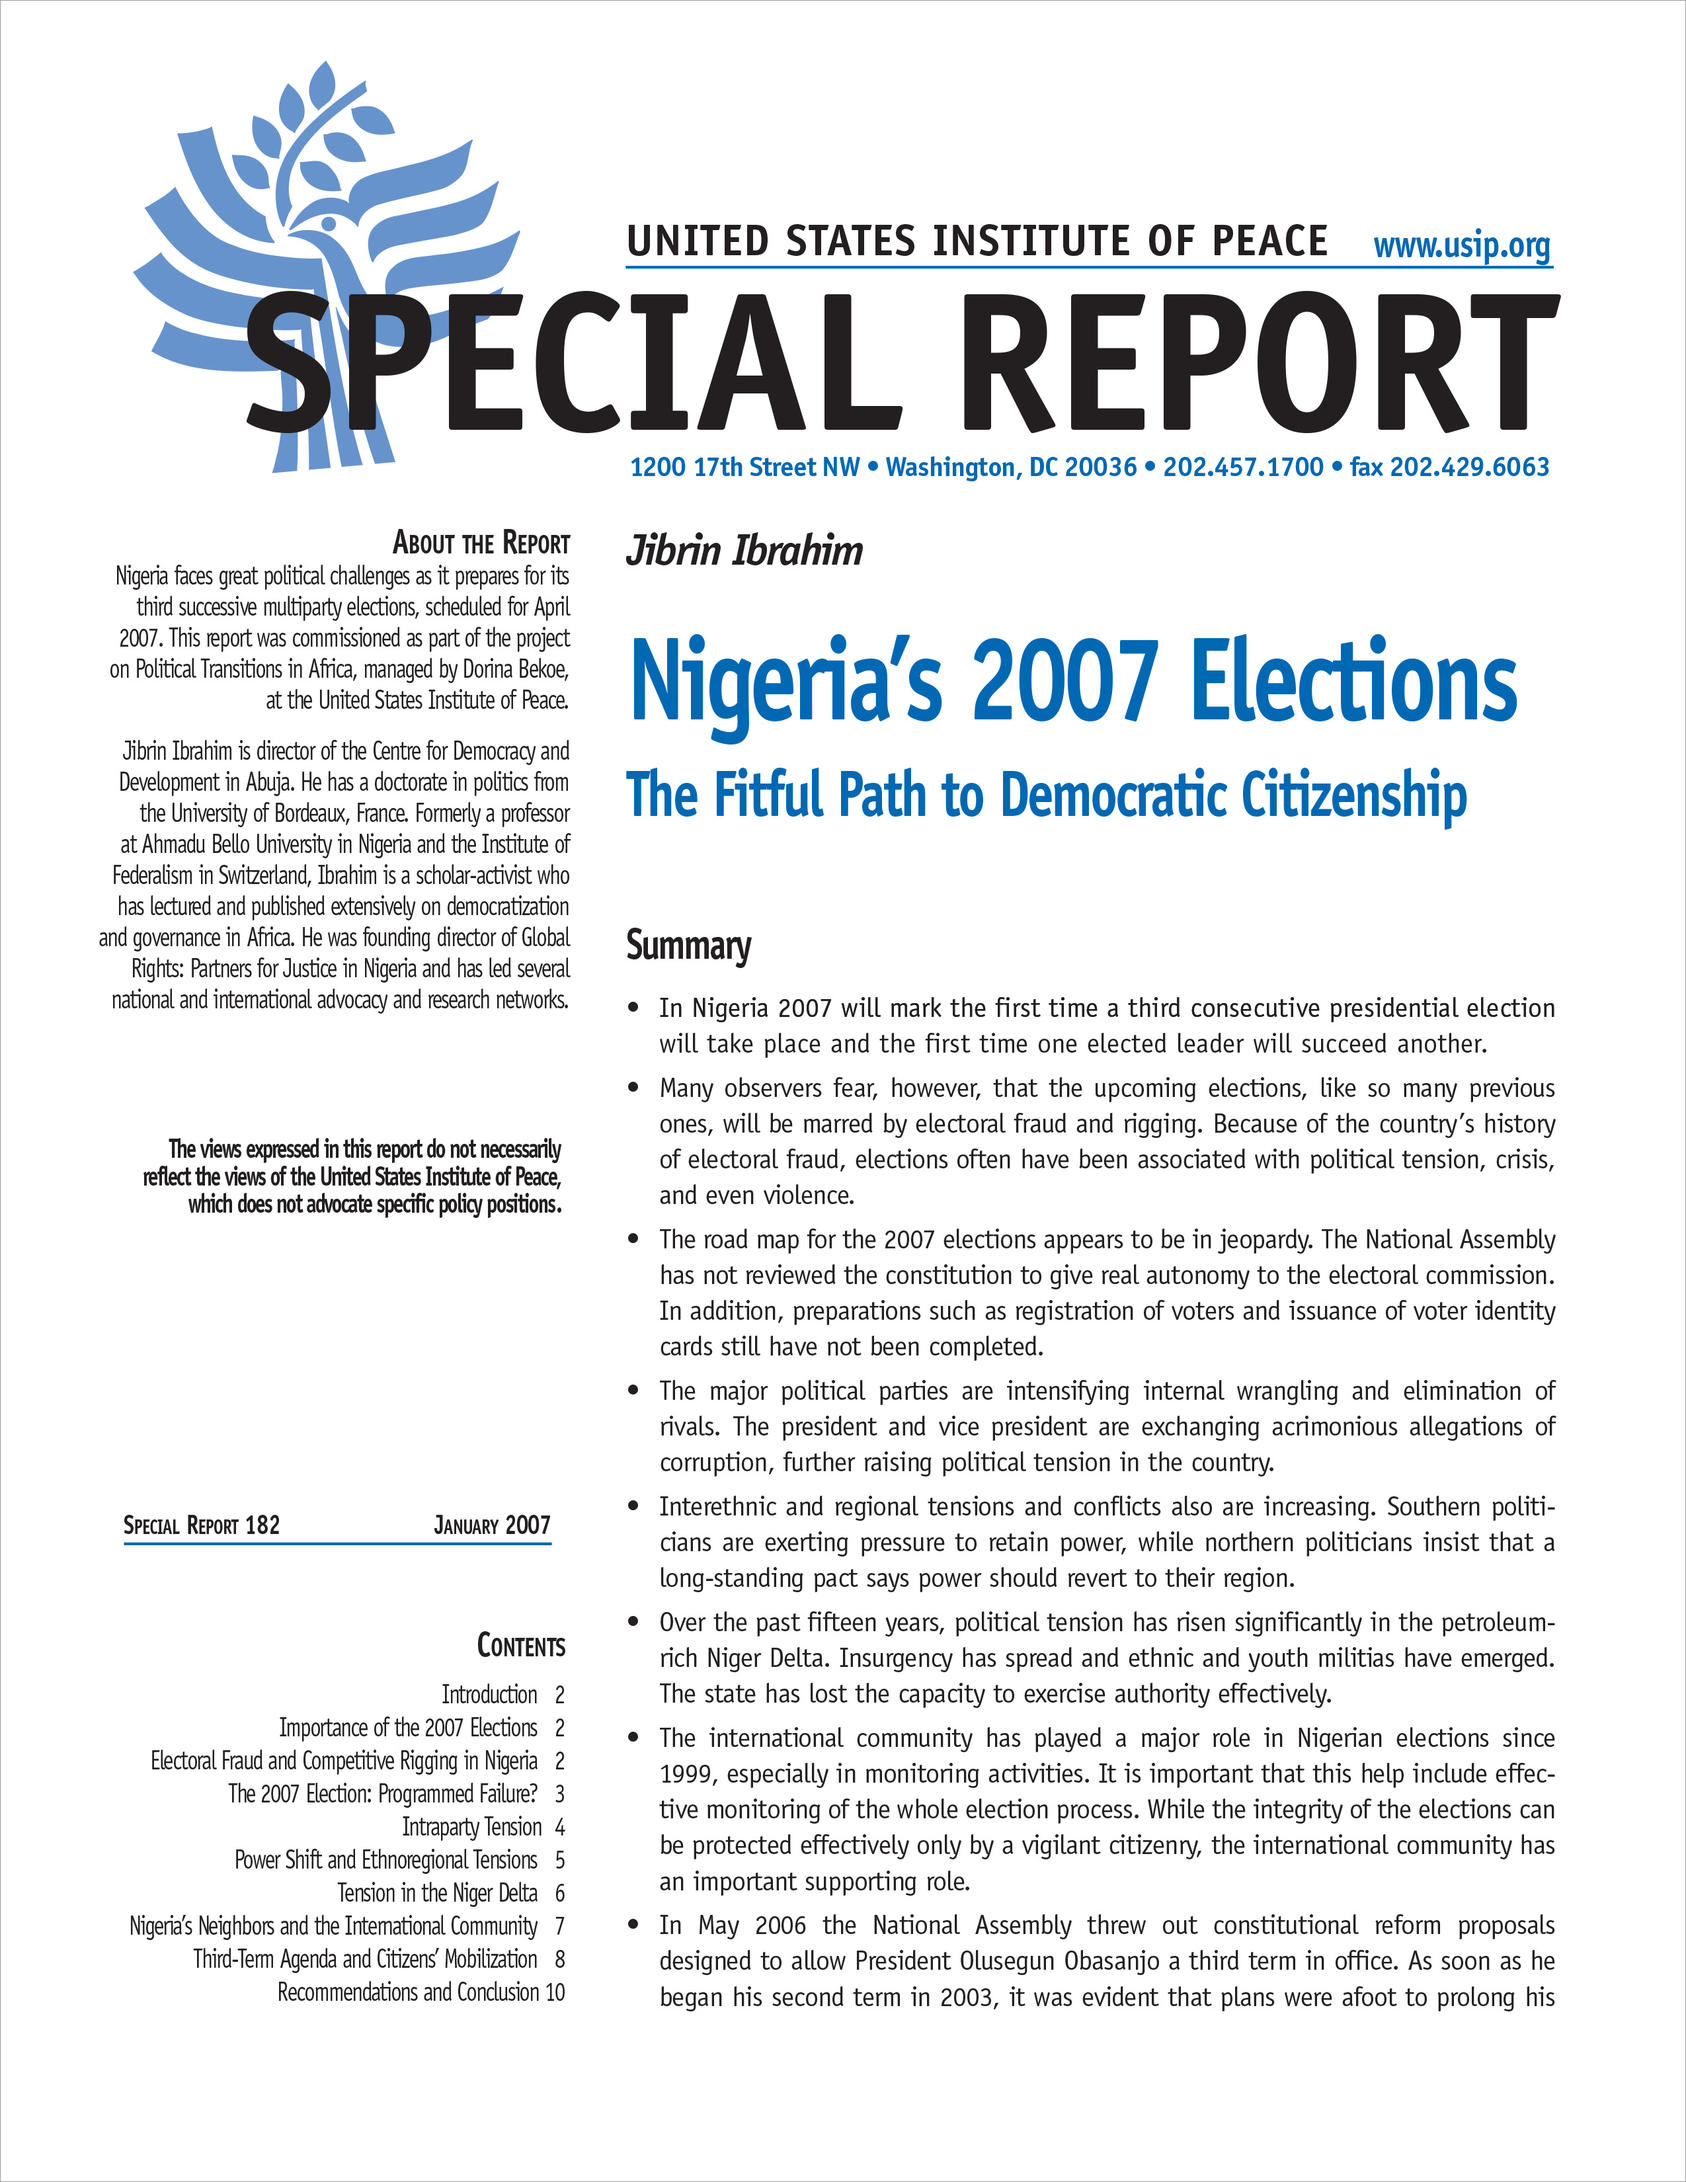 Top 10 events of the electoral agenda of June 21-27, 2018 63